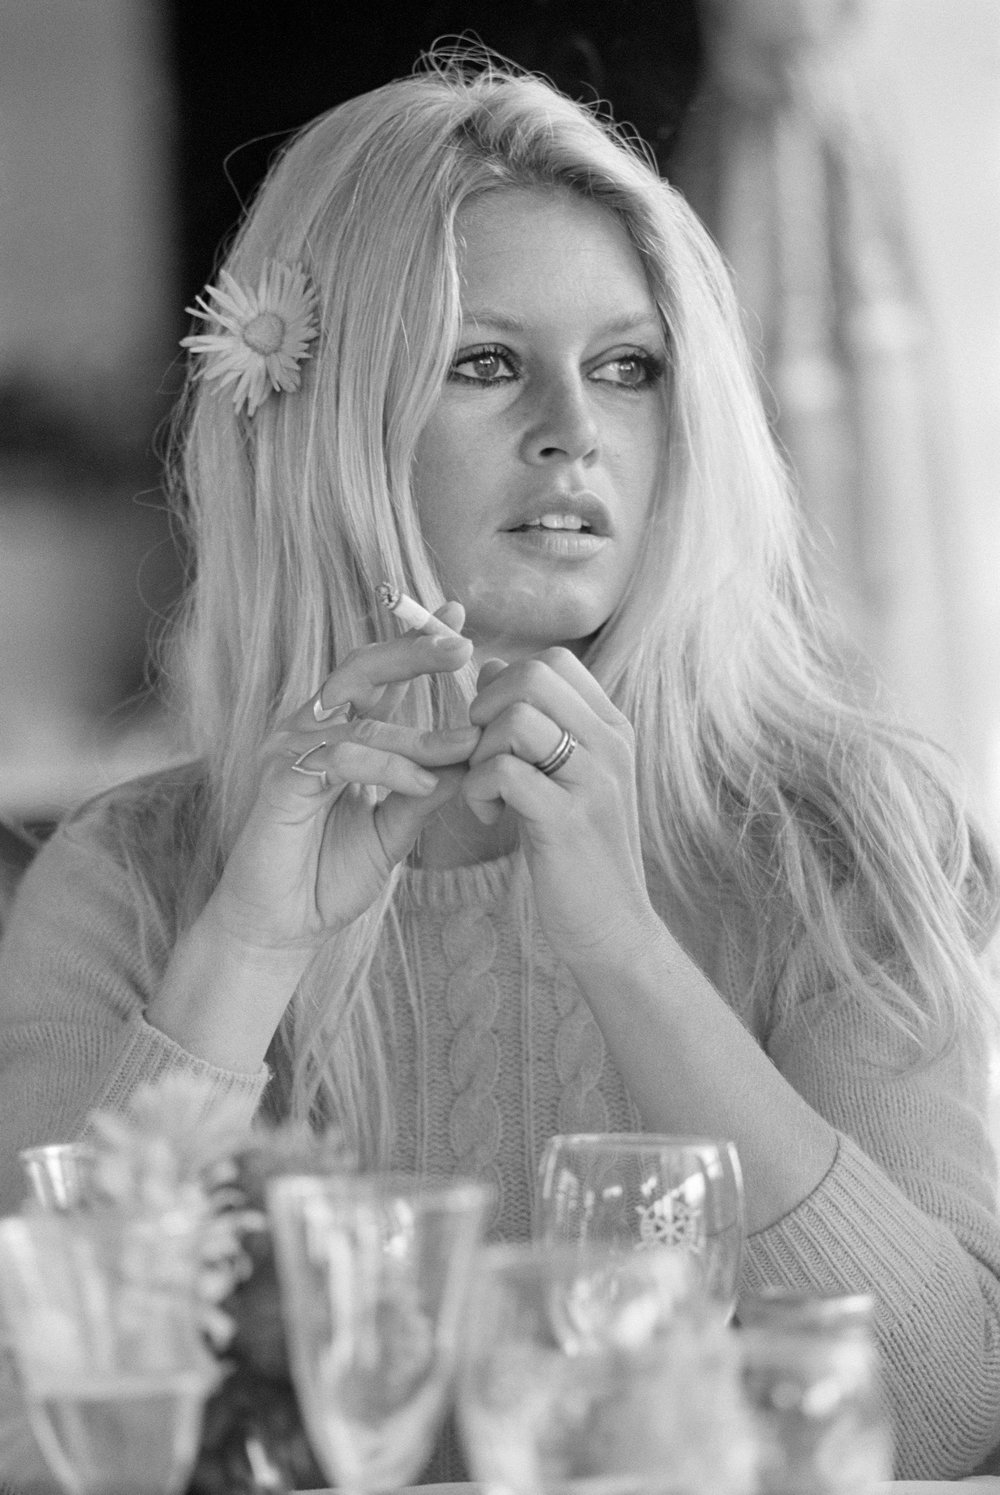 Brigitte Bardot Deauvile 1968 by Terry O`Neill  Ed 50, Silver gelatin  Available in several sizes  Price on request